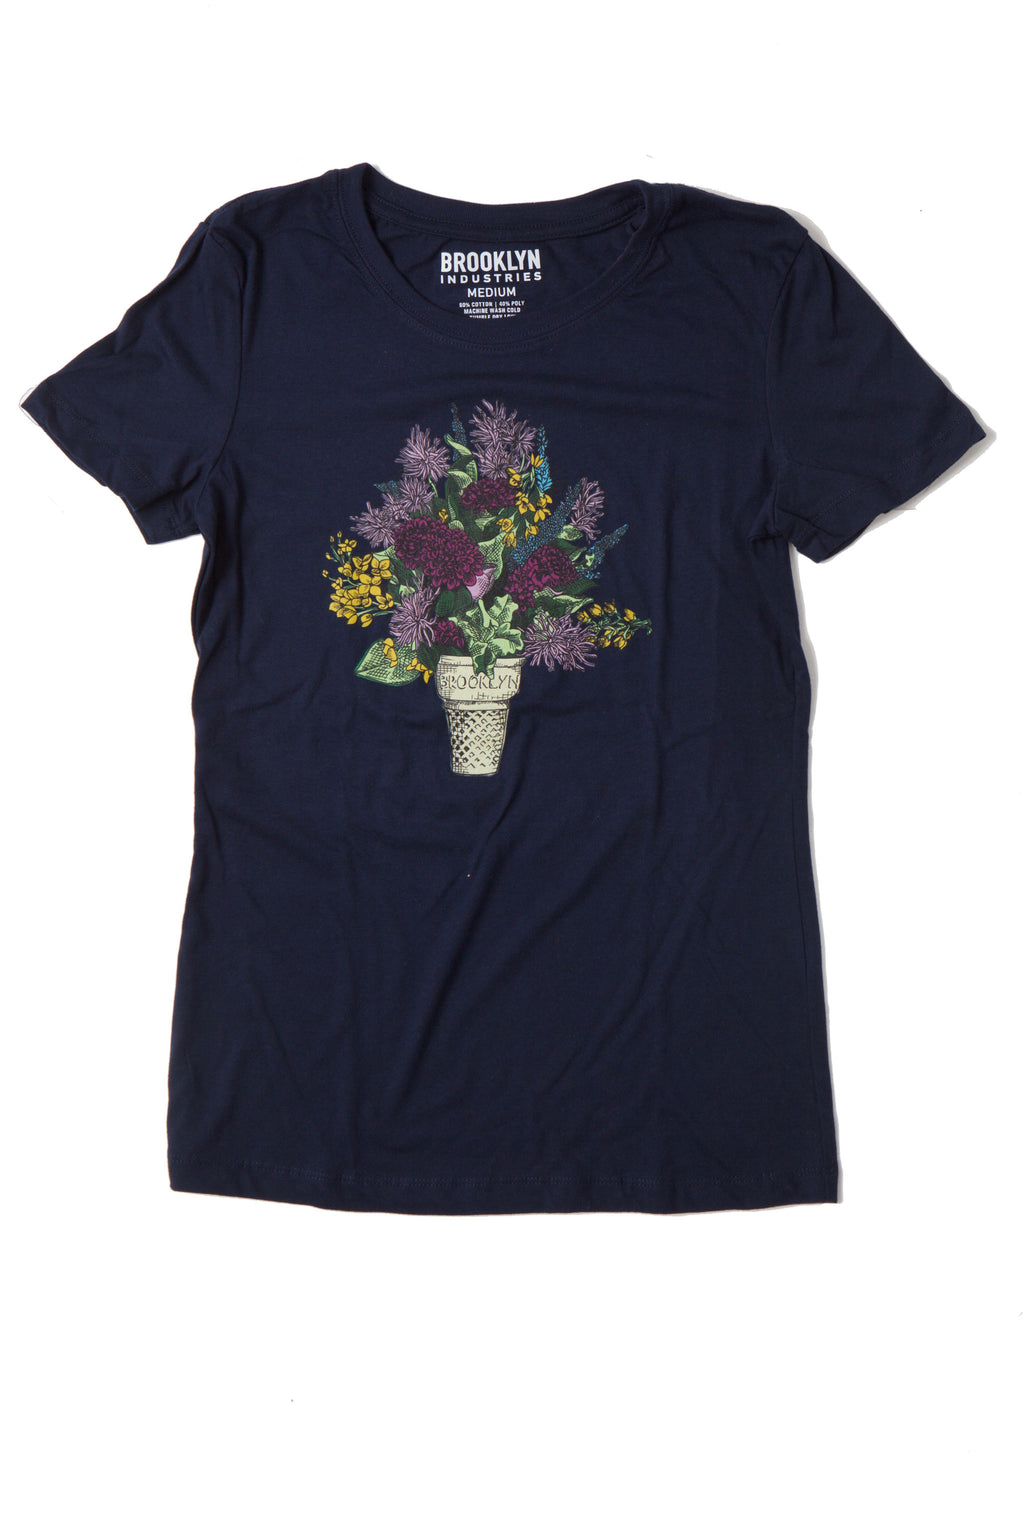 FLAT LAY BLUE TSHIRT WITH A BOUQUET OF FLOWERS IN A BROOKLYN ICE CREAM CONE